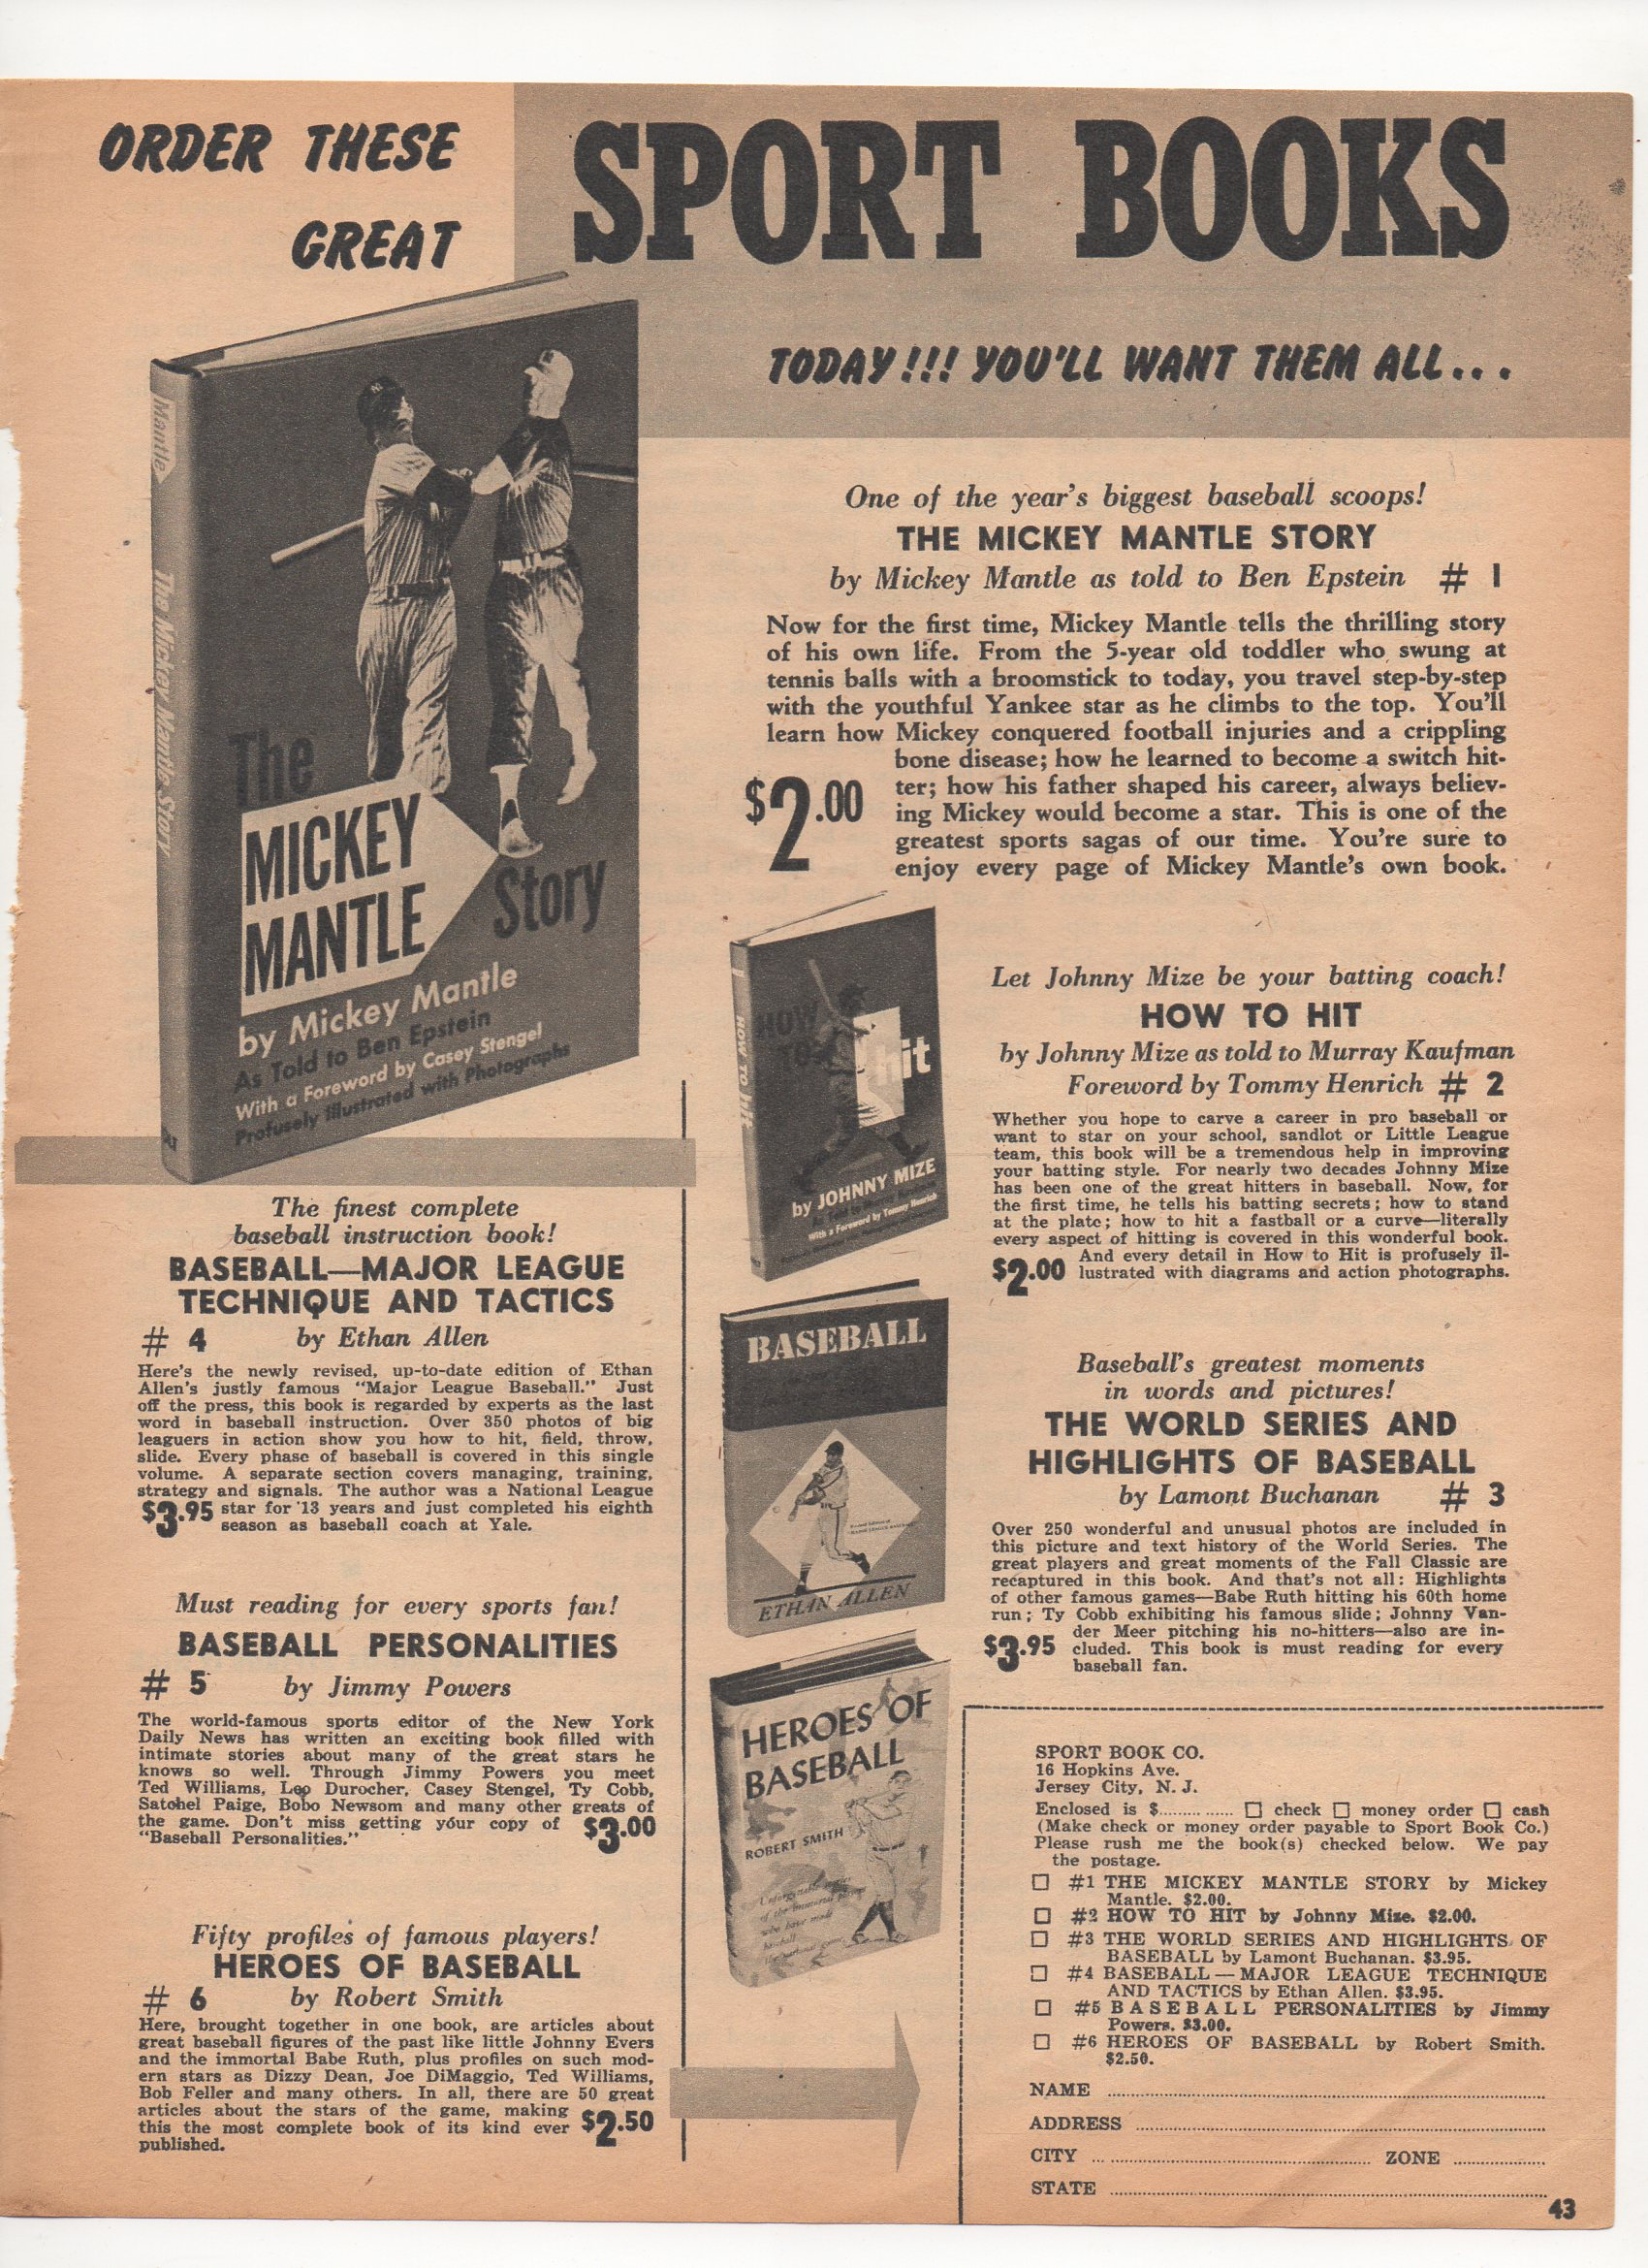 1954 inside baseball magazine feb, vol 2, no. 1